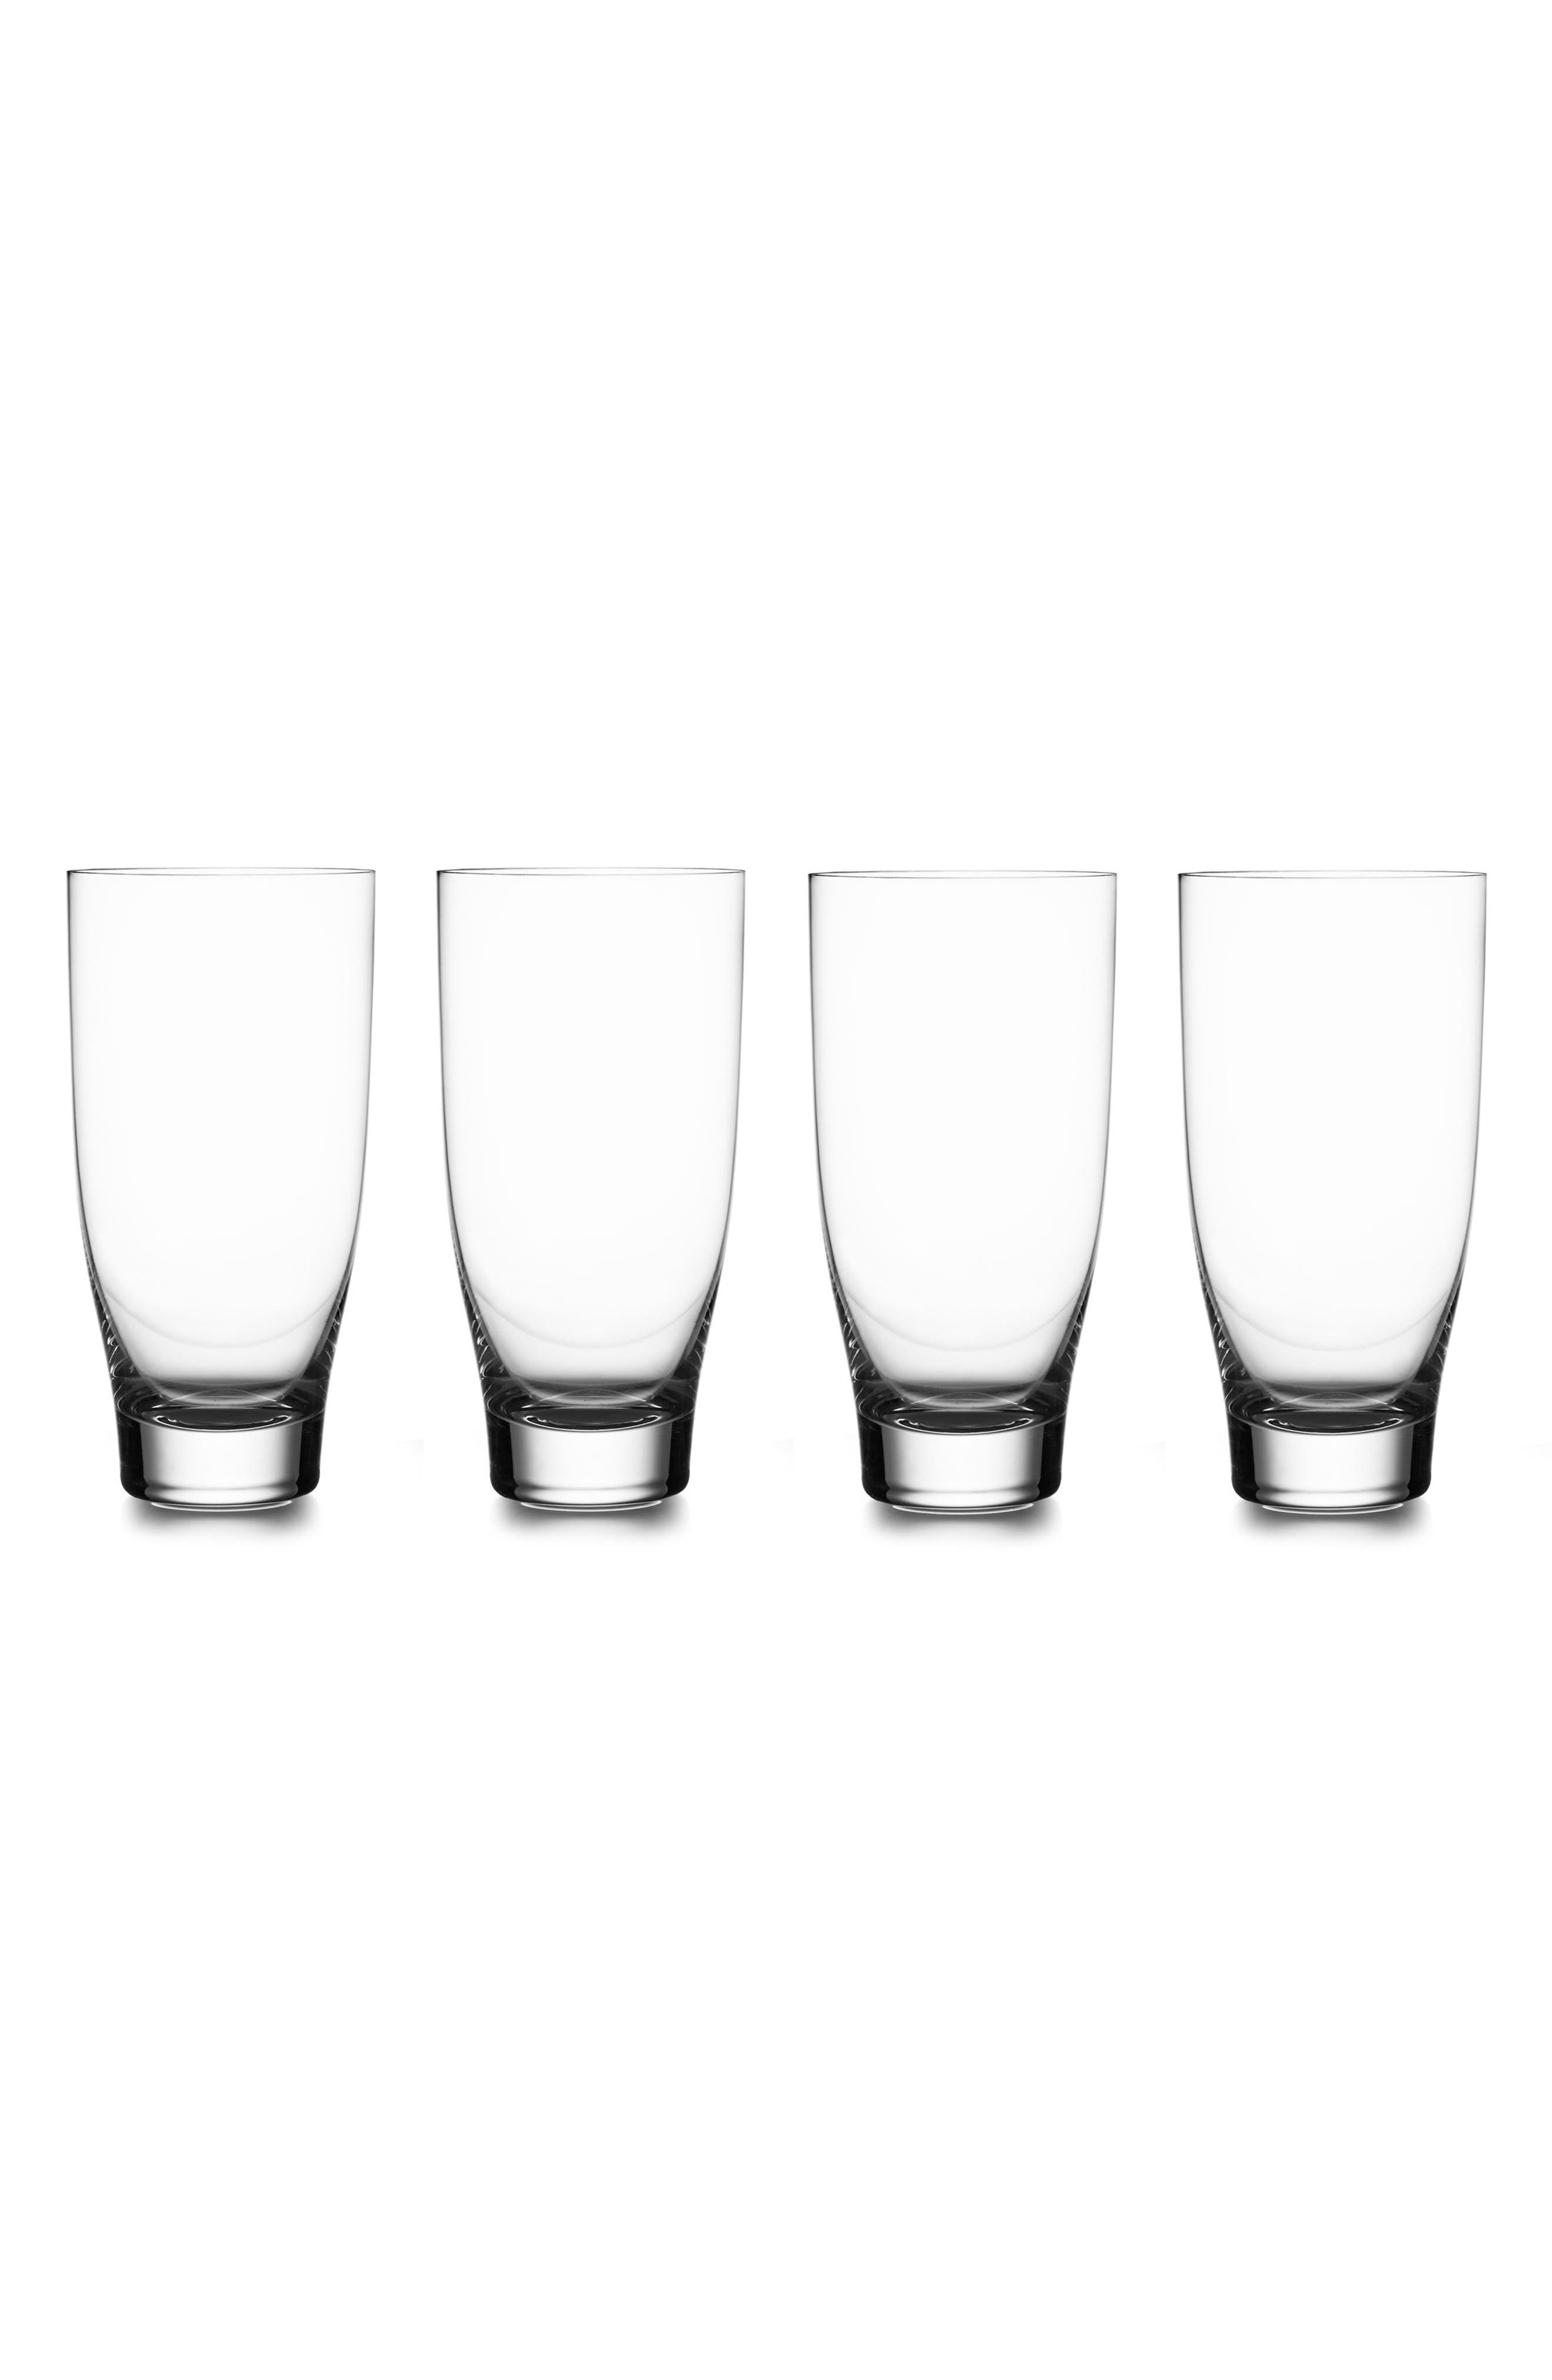 Vie Set of 4 Highball Glasses,                             Main thumbnail 1, color,                             Clear